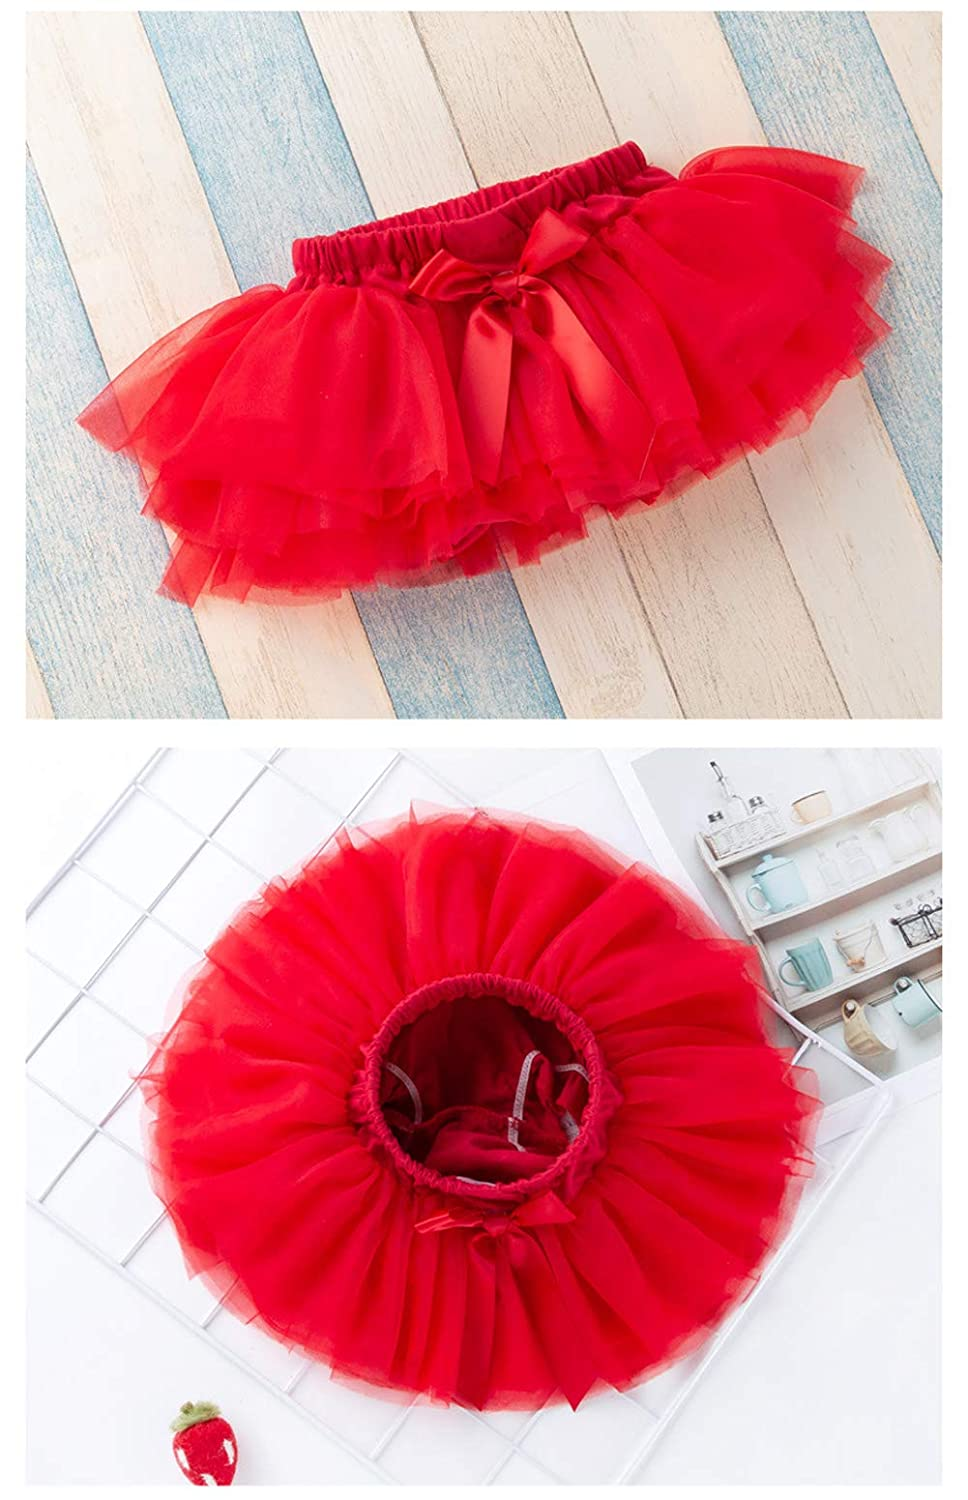 MAXENVISION Baby Girls Soft Tutu Skirt Toddler Ruffled Pants 0-24 Months